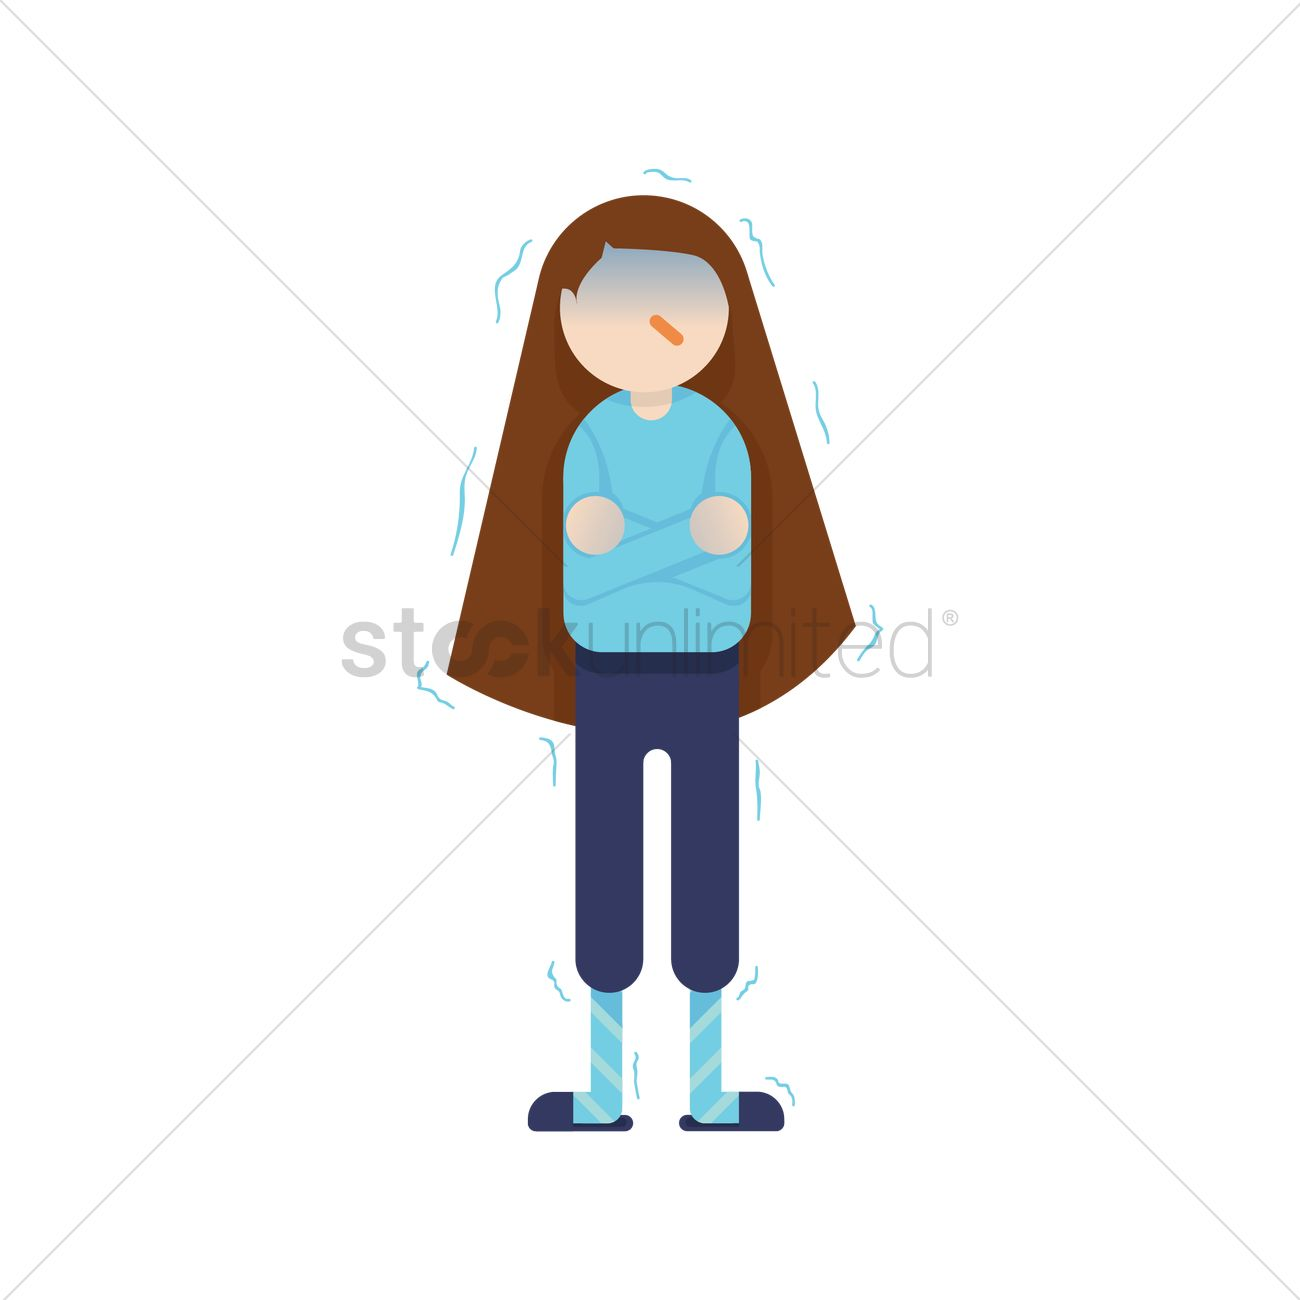 Amy) Woman is Shivering Cold clipart. Free download transparent .PNG    Creazilla